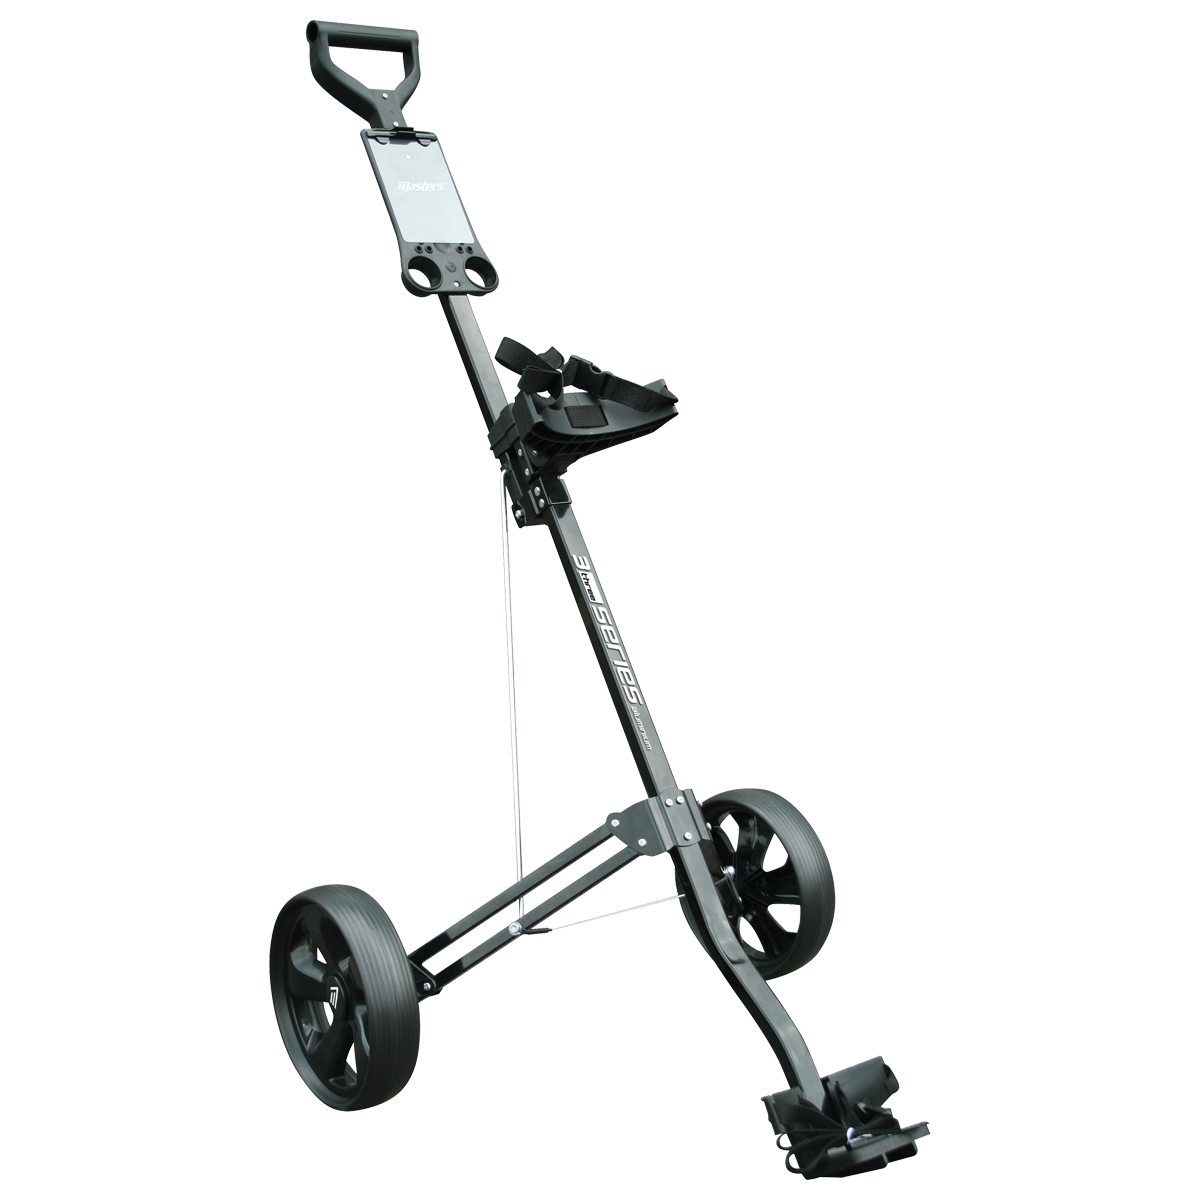 Pull Golf Trolleys